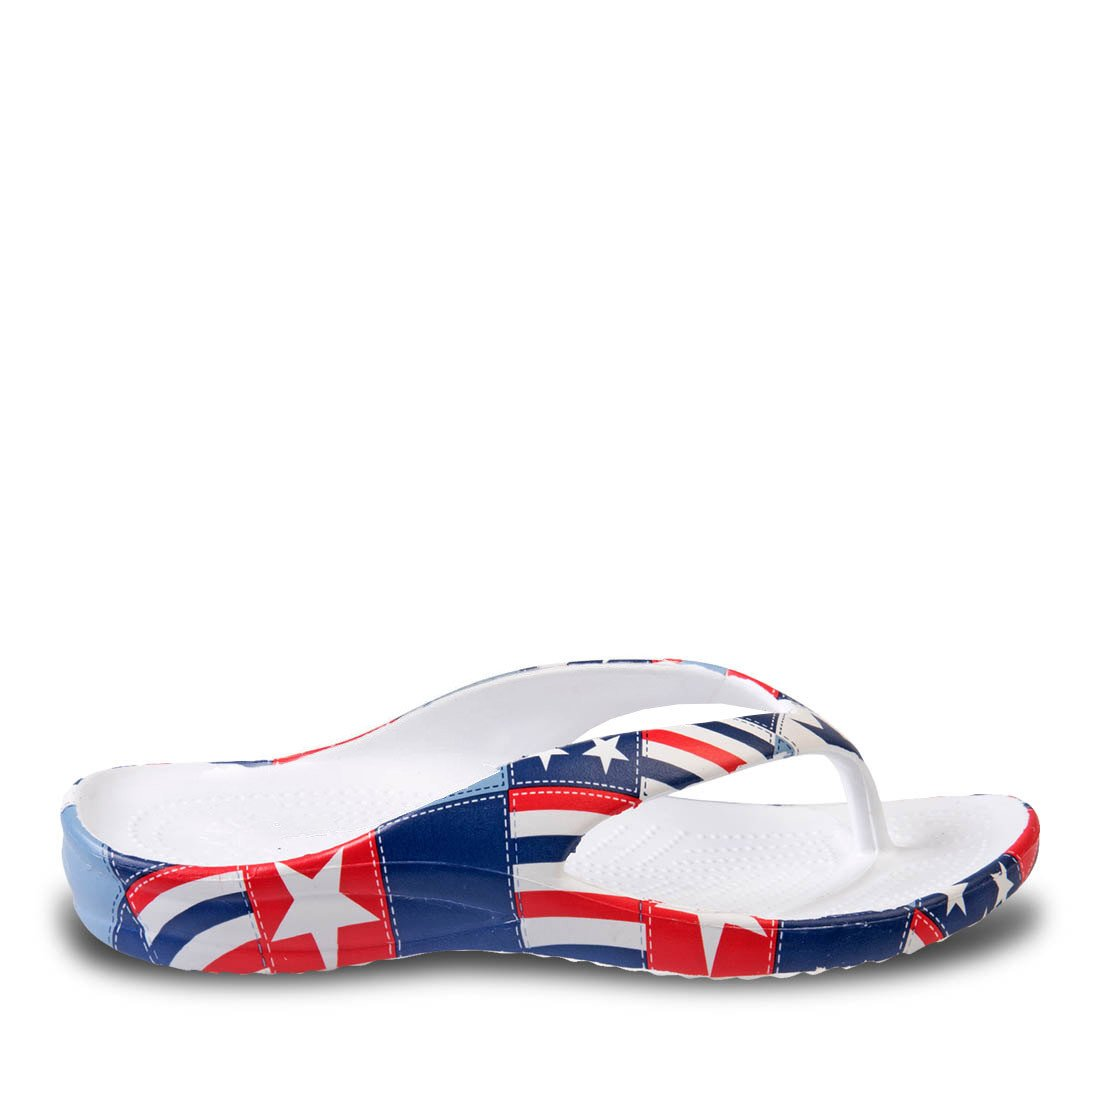 Image of Women's Loudmouth Flip Flops - Betsy Ross